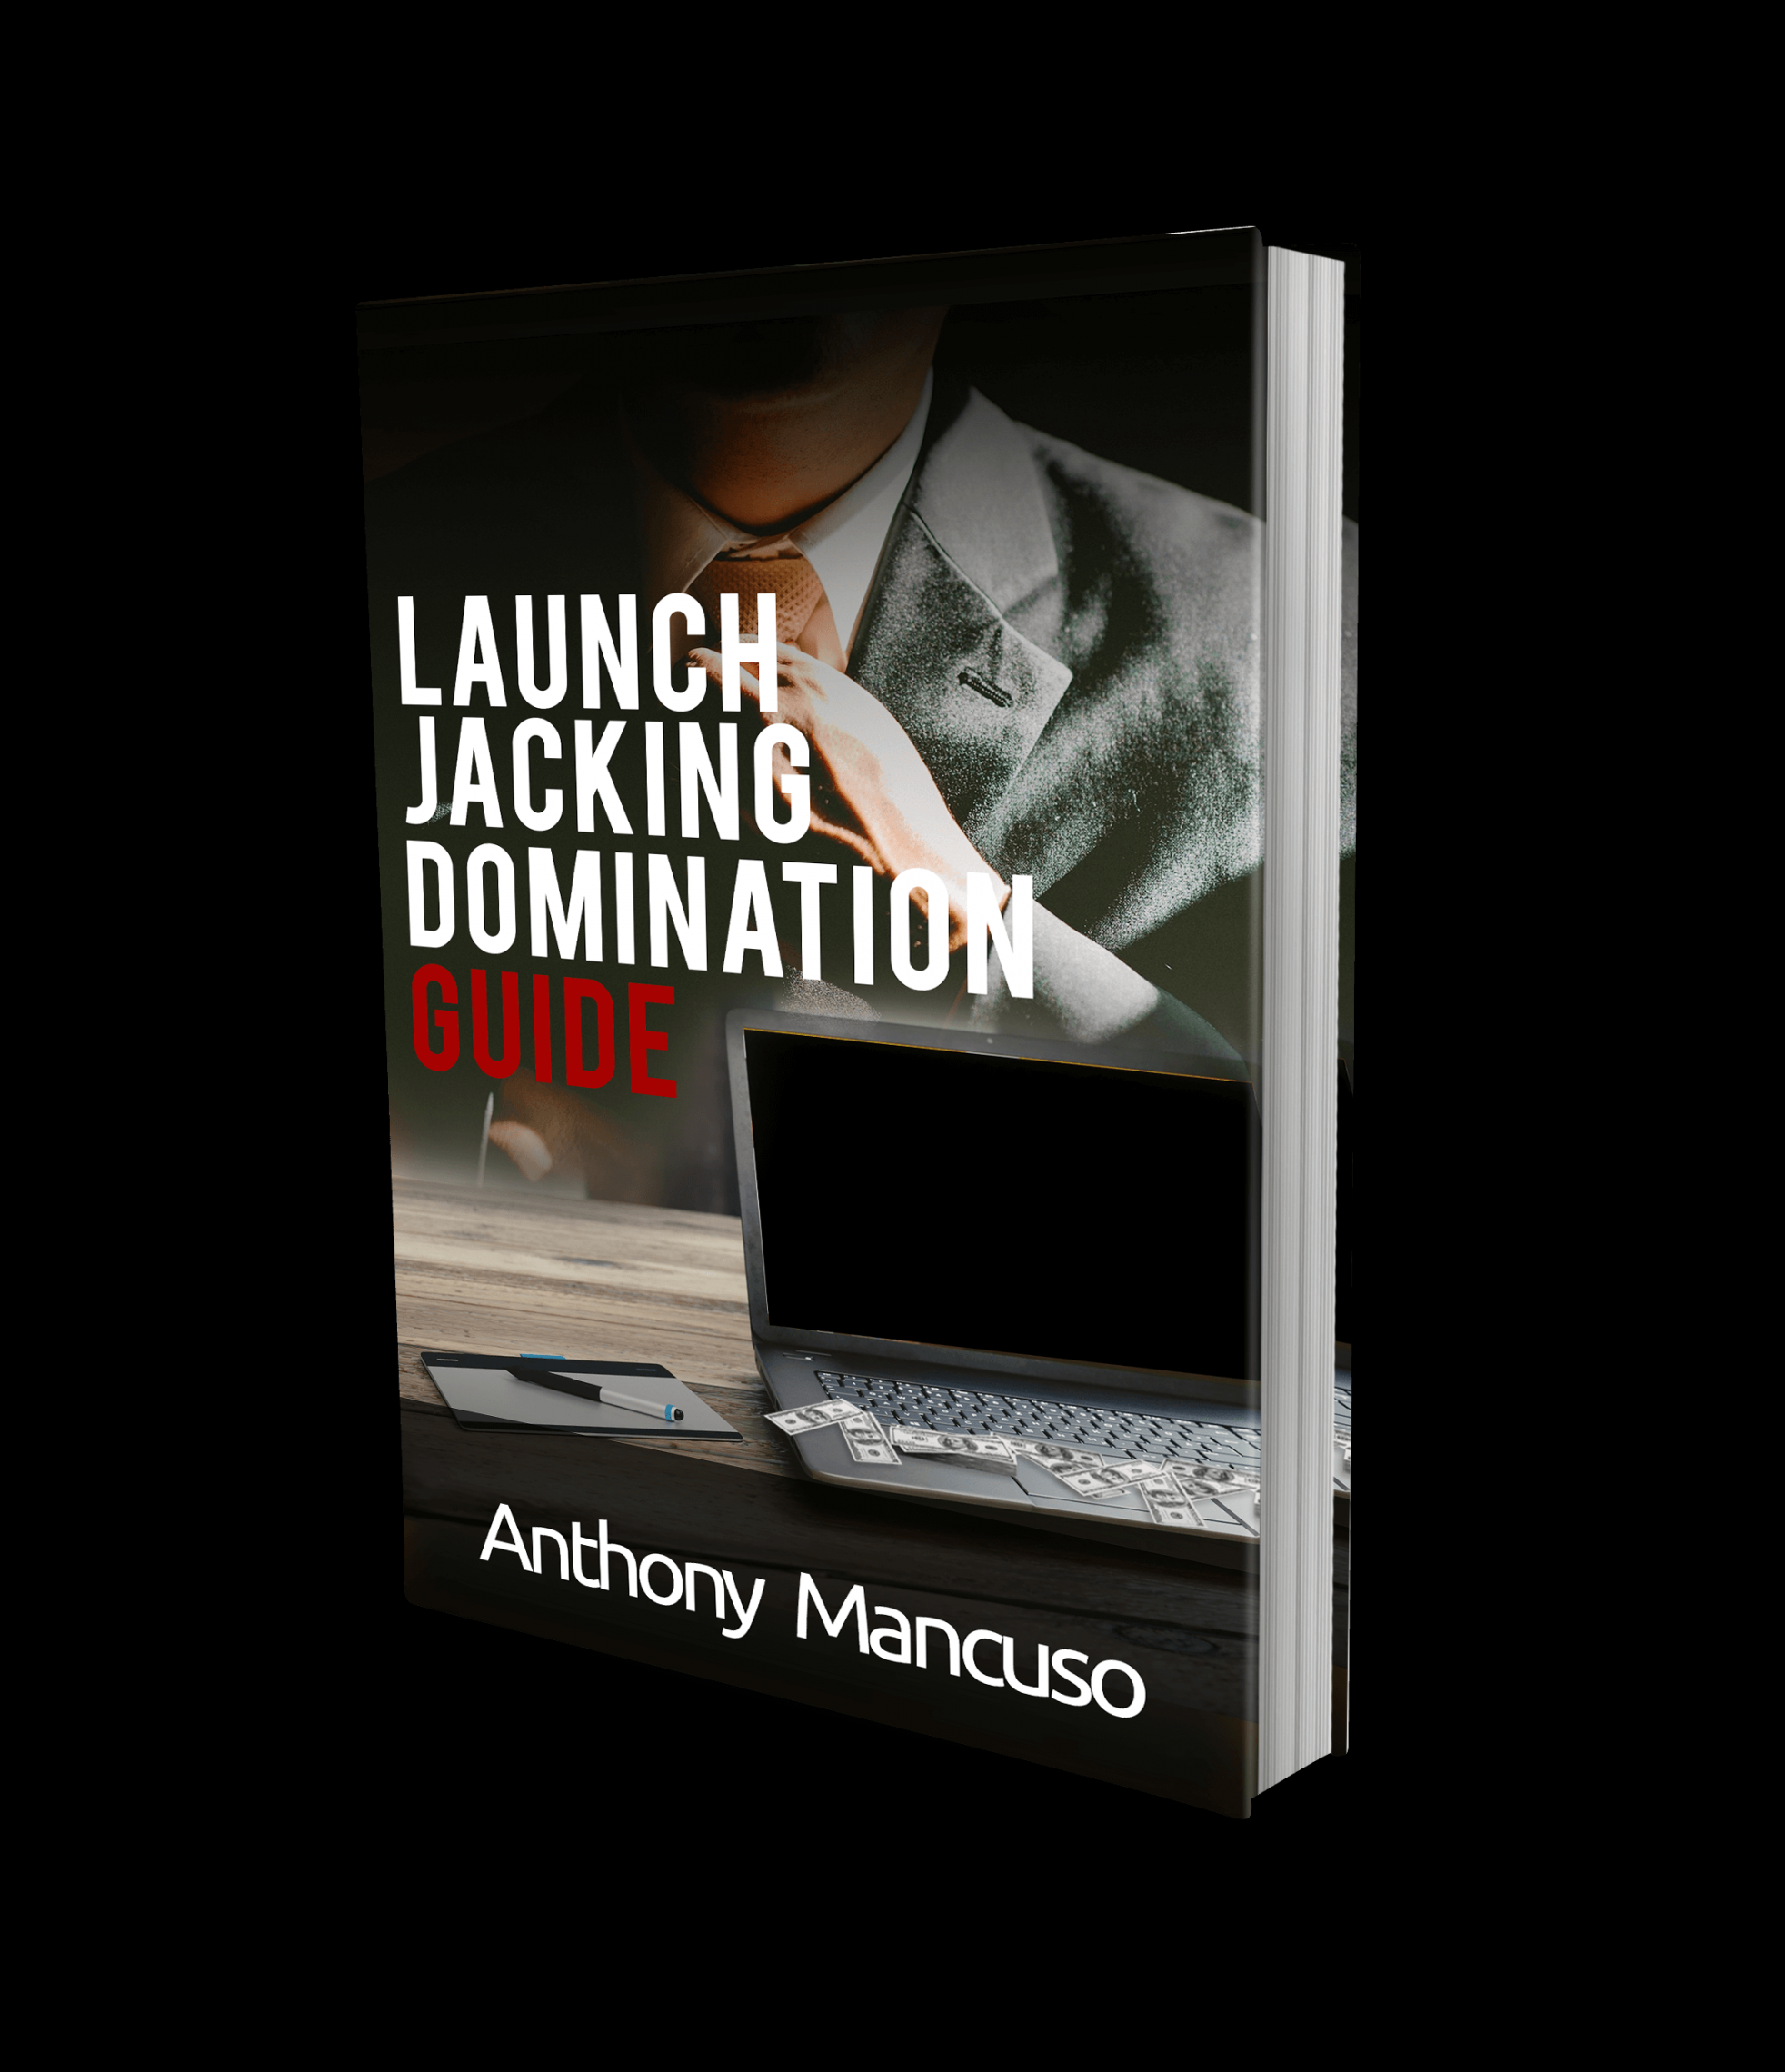 How to make an extra $2,000 – $3,000 a month using my tried and proven launch jacking methods.(Launch Jacking Domination)